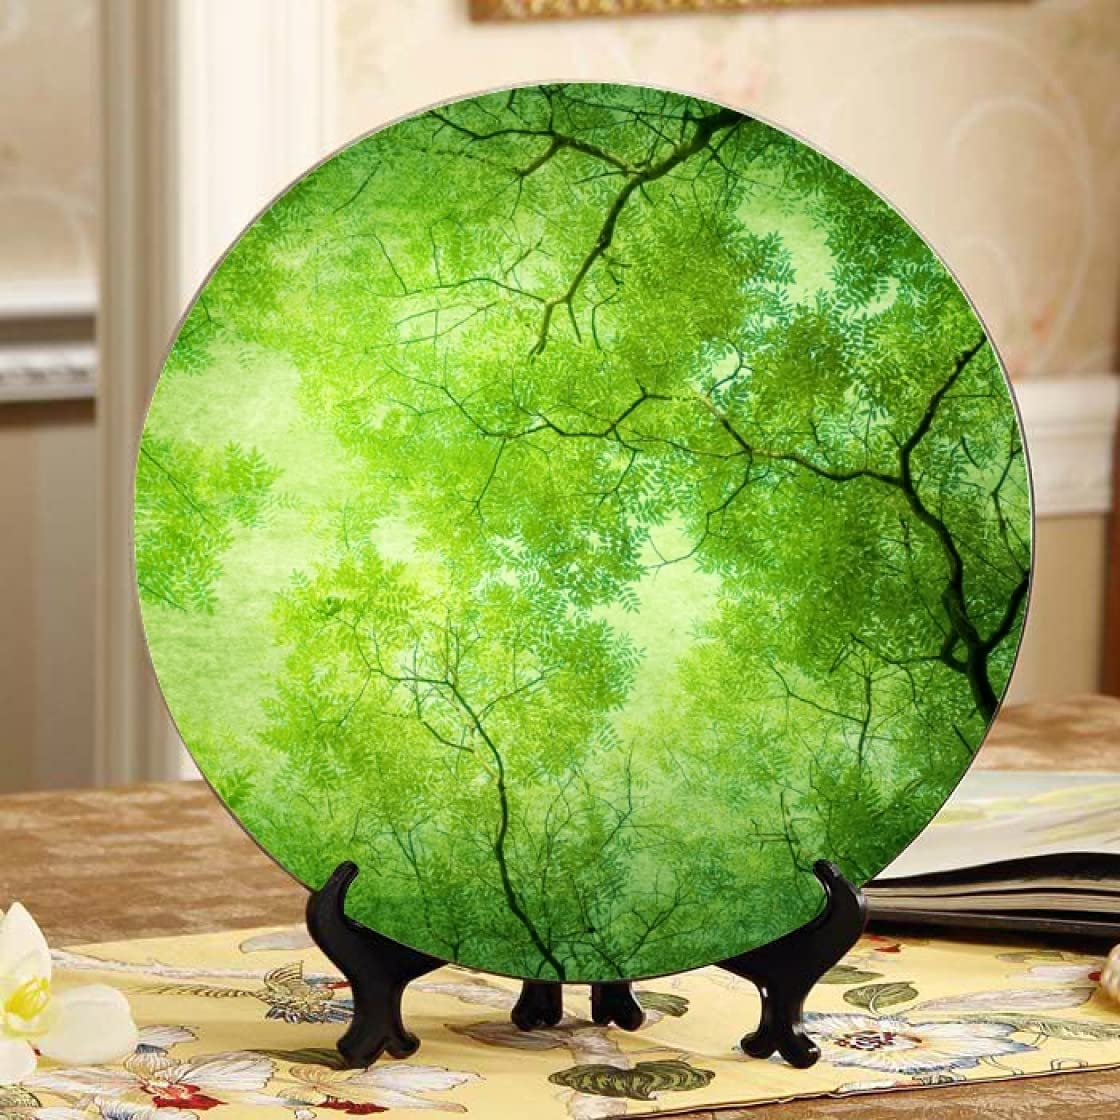 Green Leaves Colorado Springs Mall Decorated Plate Home Virginia Beach Mall Ceramic Dish Wobble-Plat